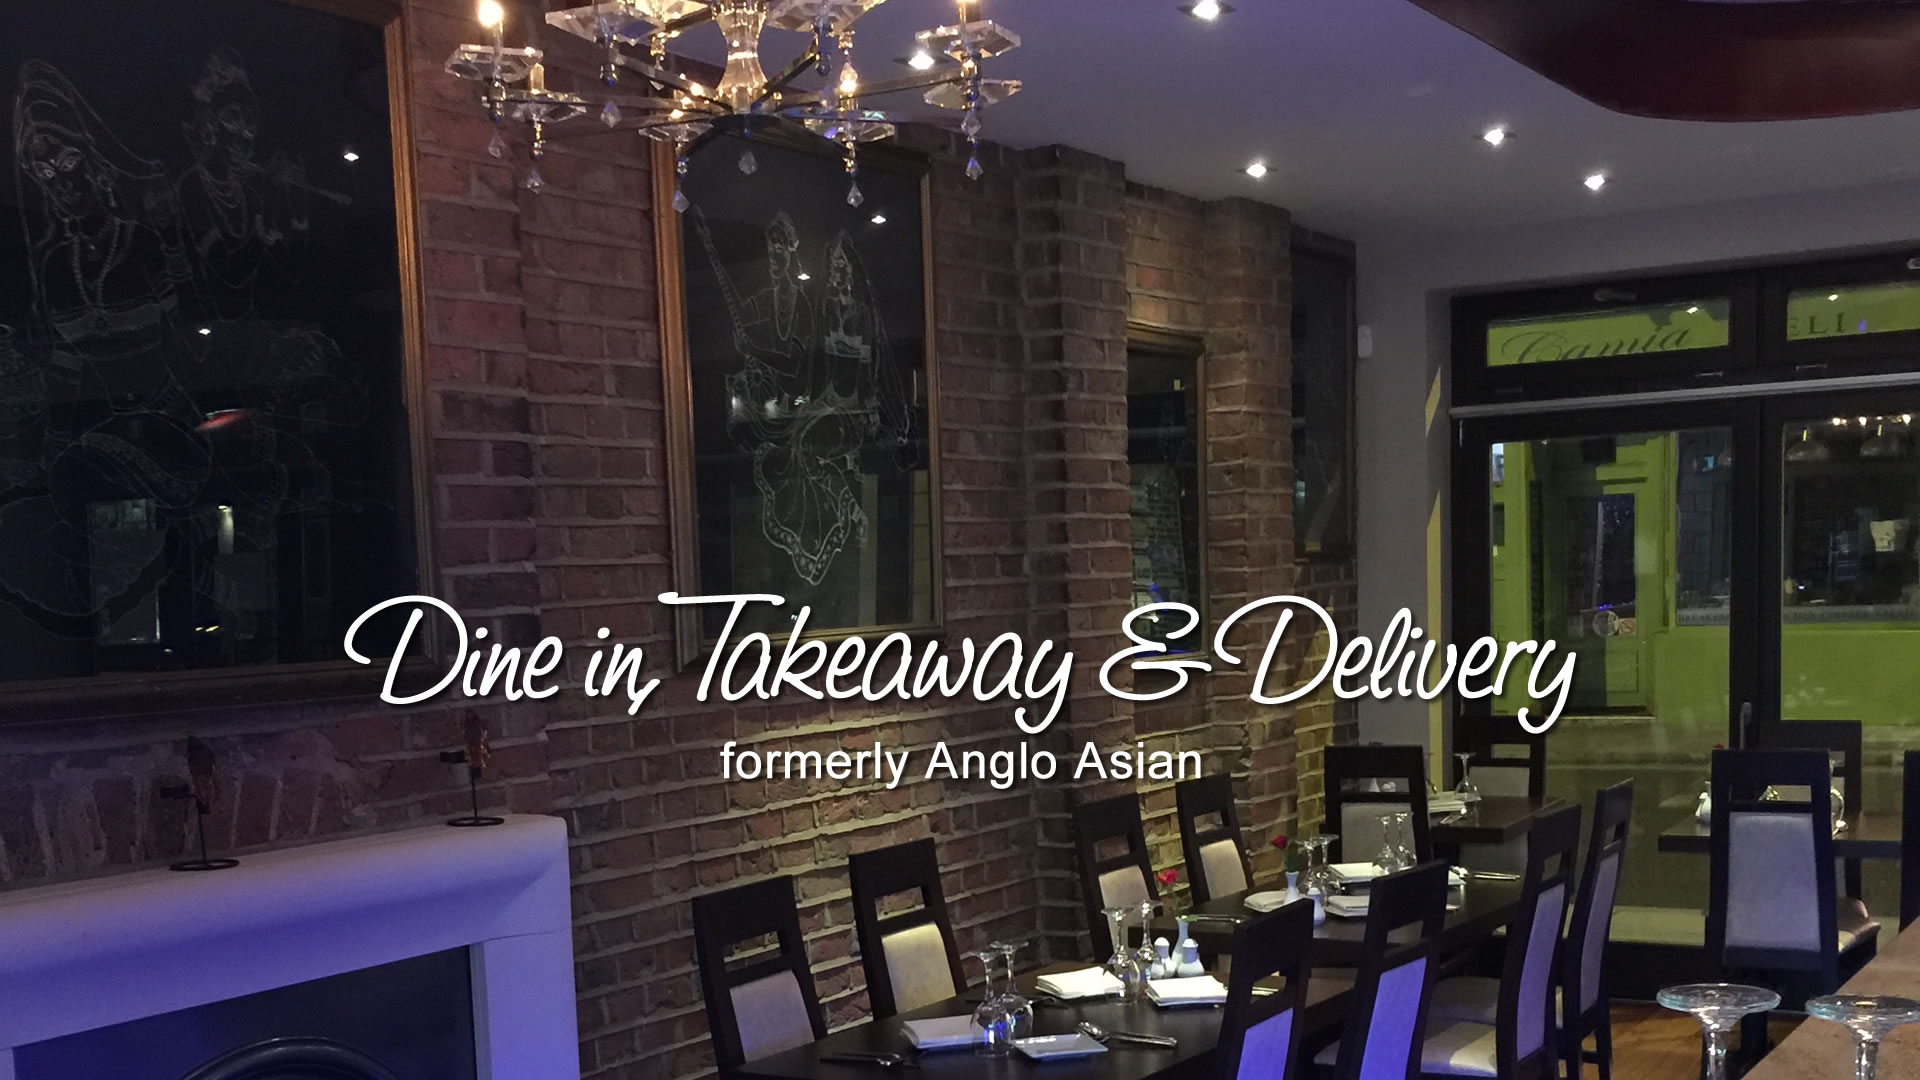 Dine in, Takeaway & Delivery